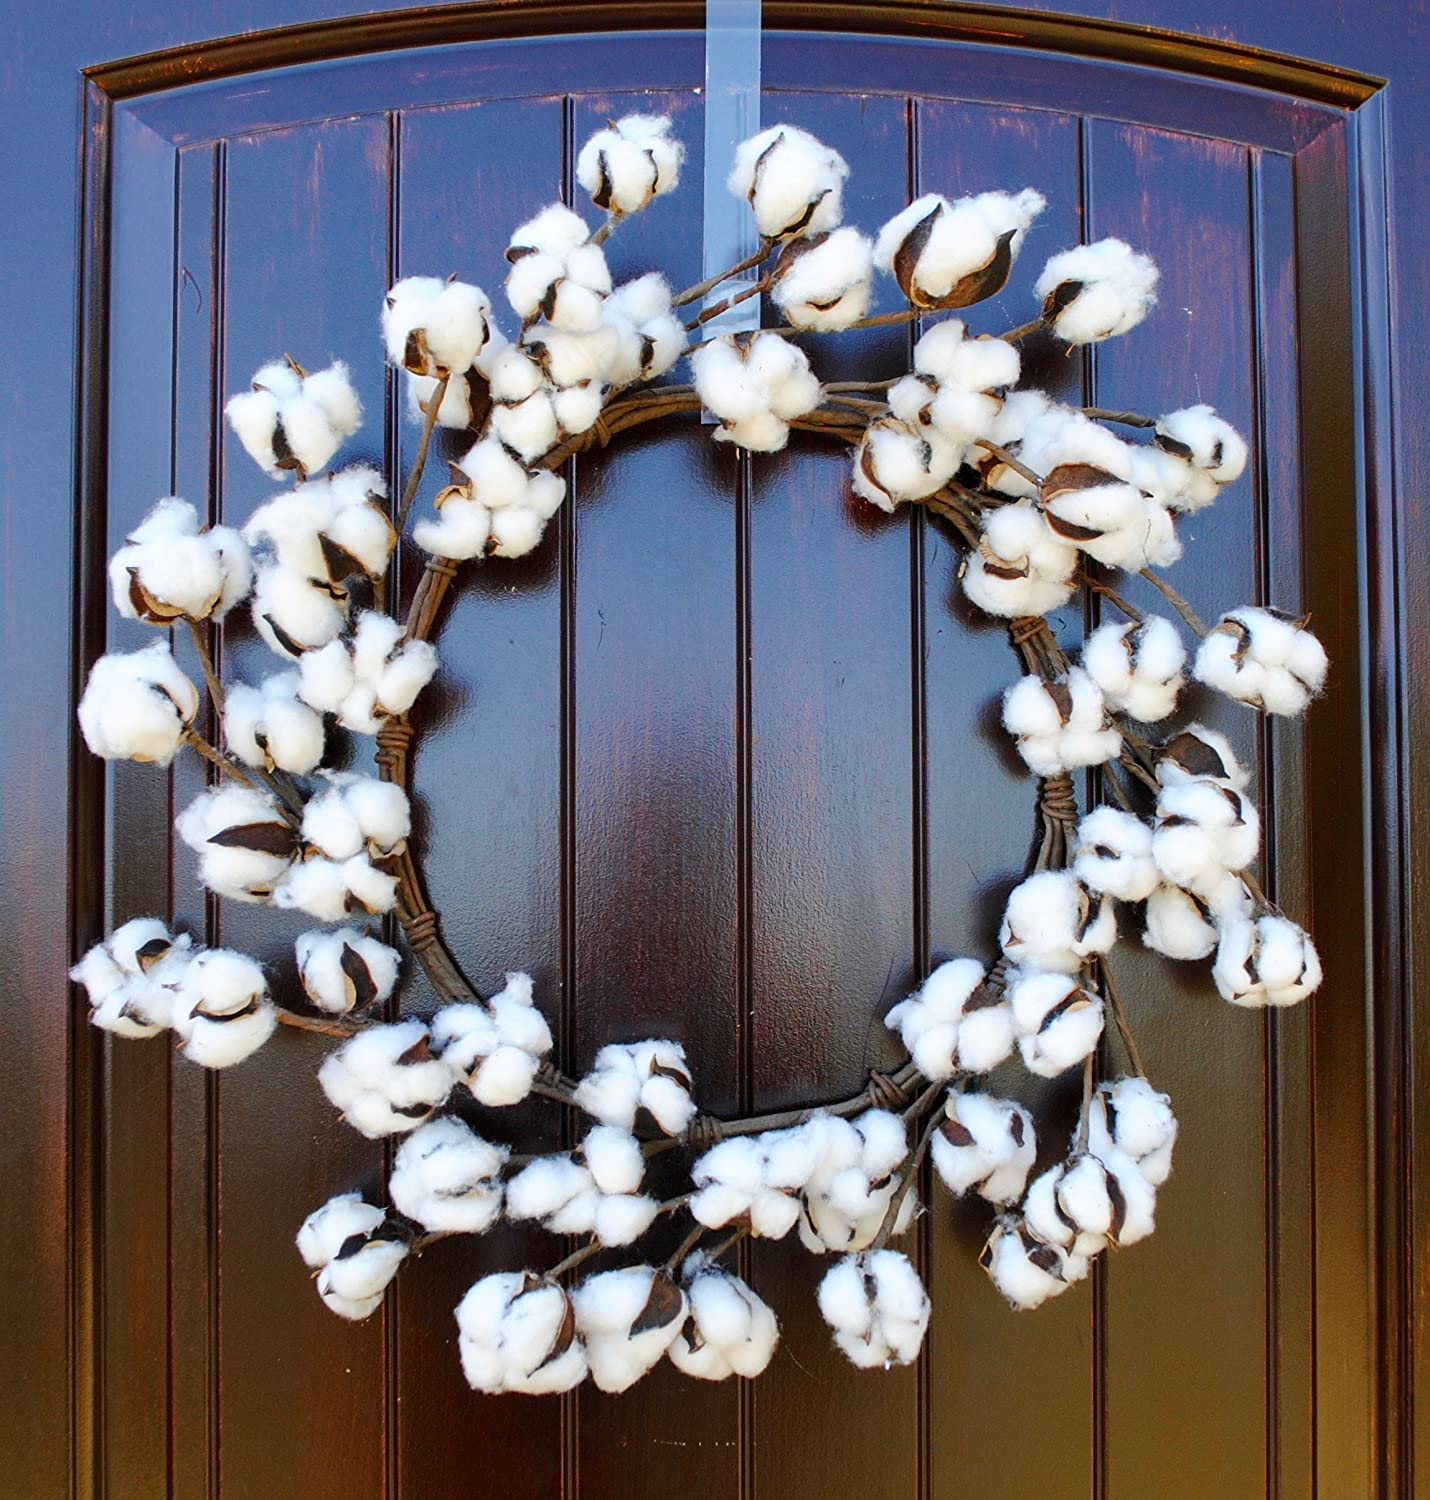 Rustic Farmhouse Style Cotton Wreath in 18 Inch Diameter with Real Preseved Bolls